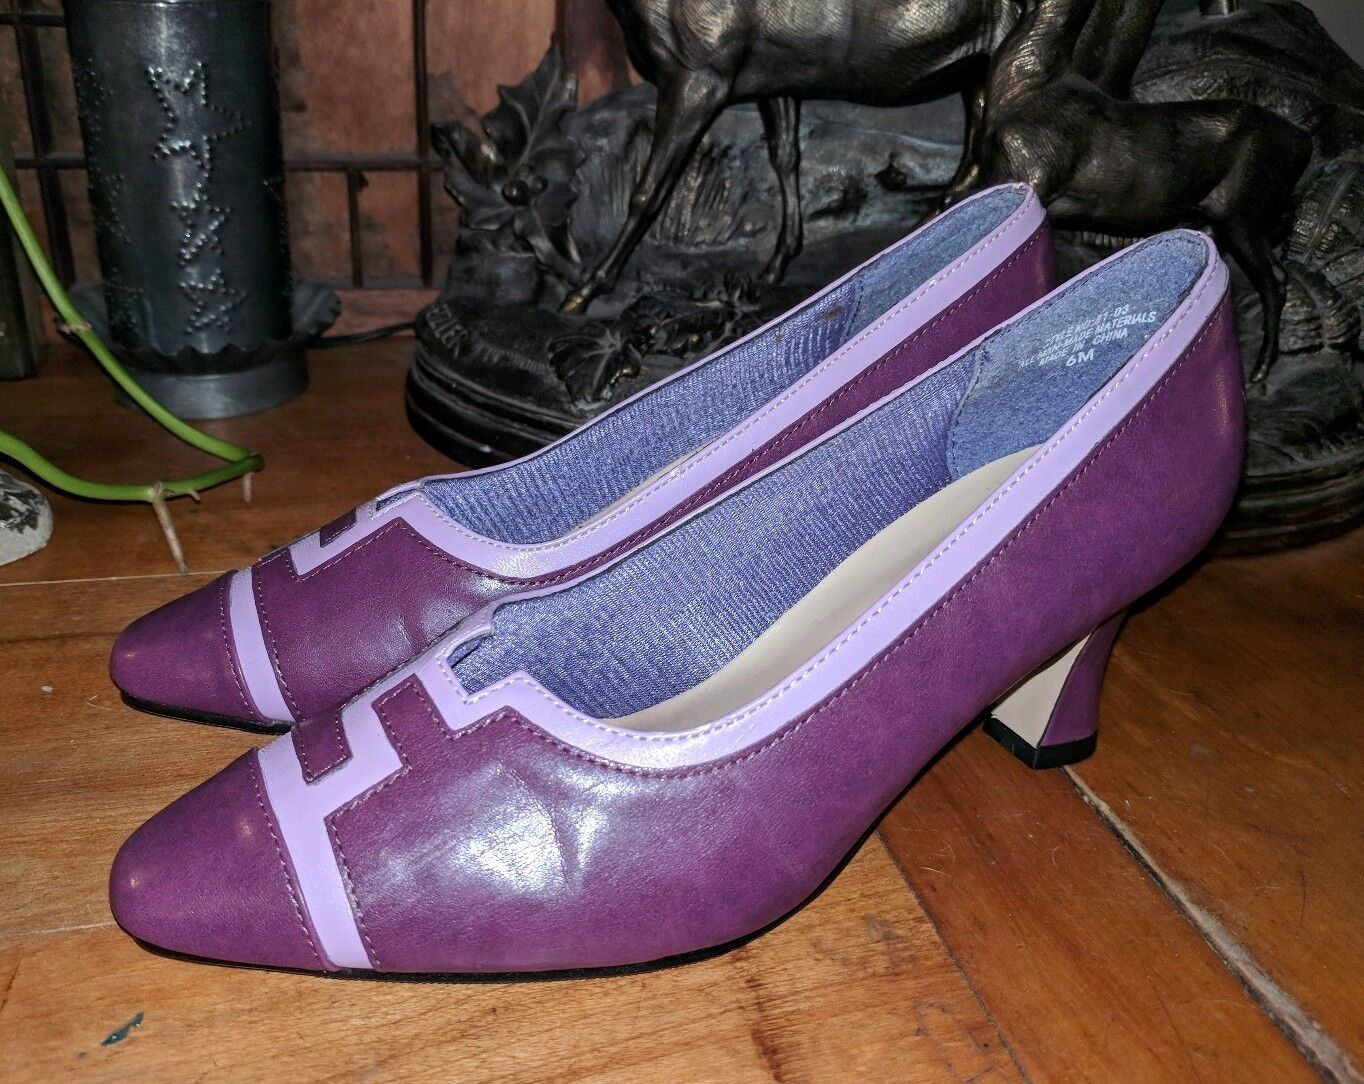 NEVER USED VINTAGE ANNIE PLUM LEATHER LOOK HIGH HEELS 50'S ERA 6 M PUMPS chaussures